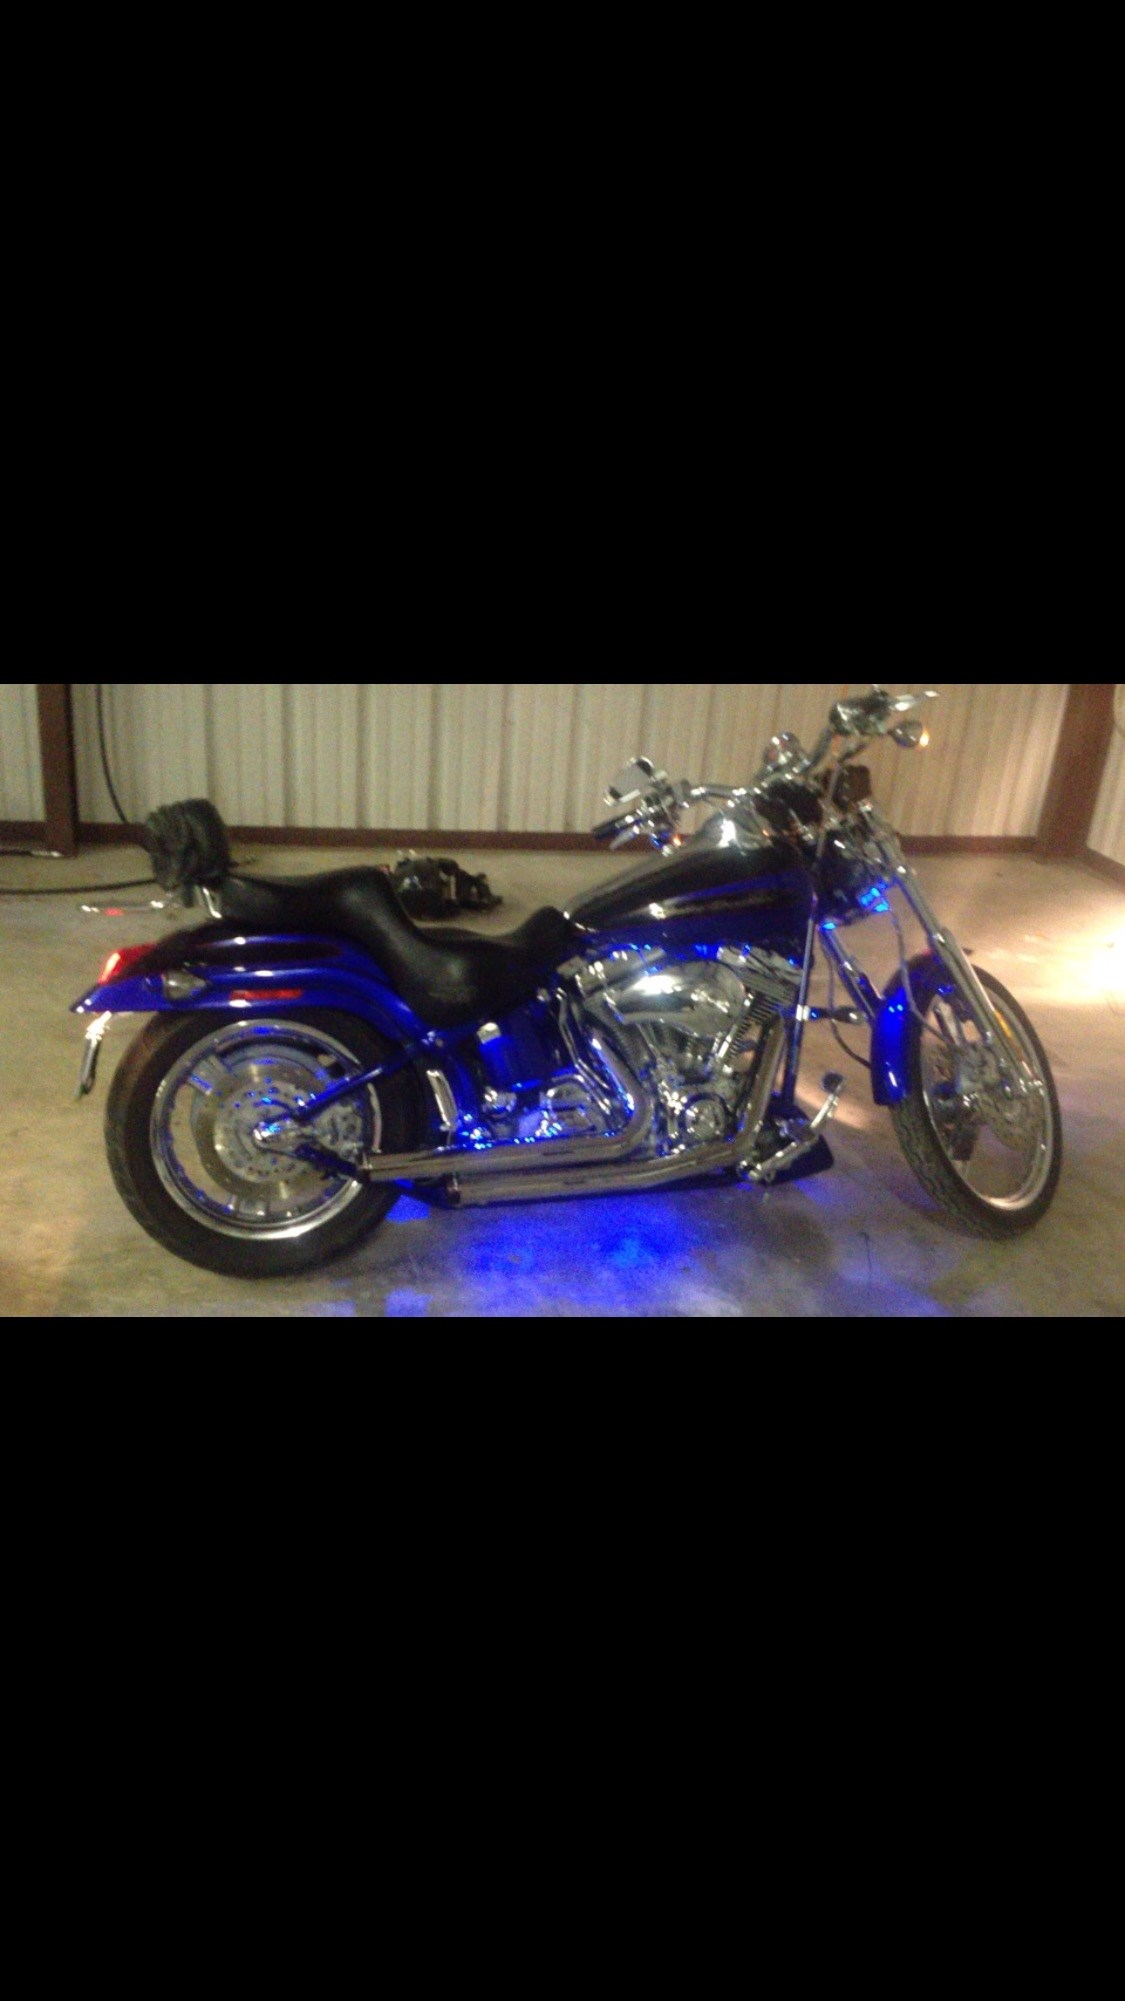 Softail Dealer New Braunfels Tx >> 2004 Harley-Davidson® FXSTDSE2 Screamin' Eagle® Softail ...